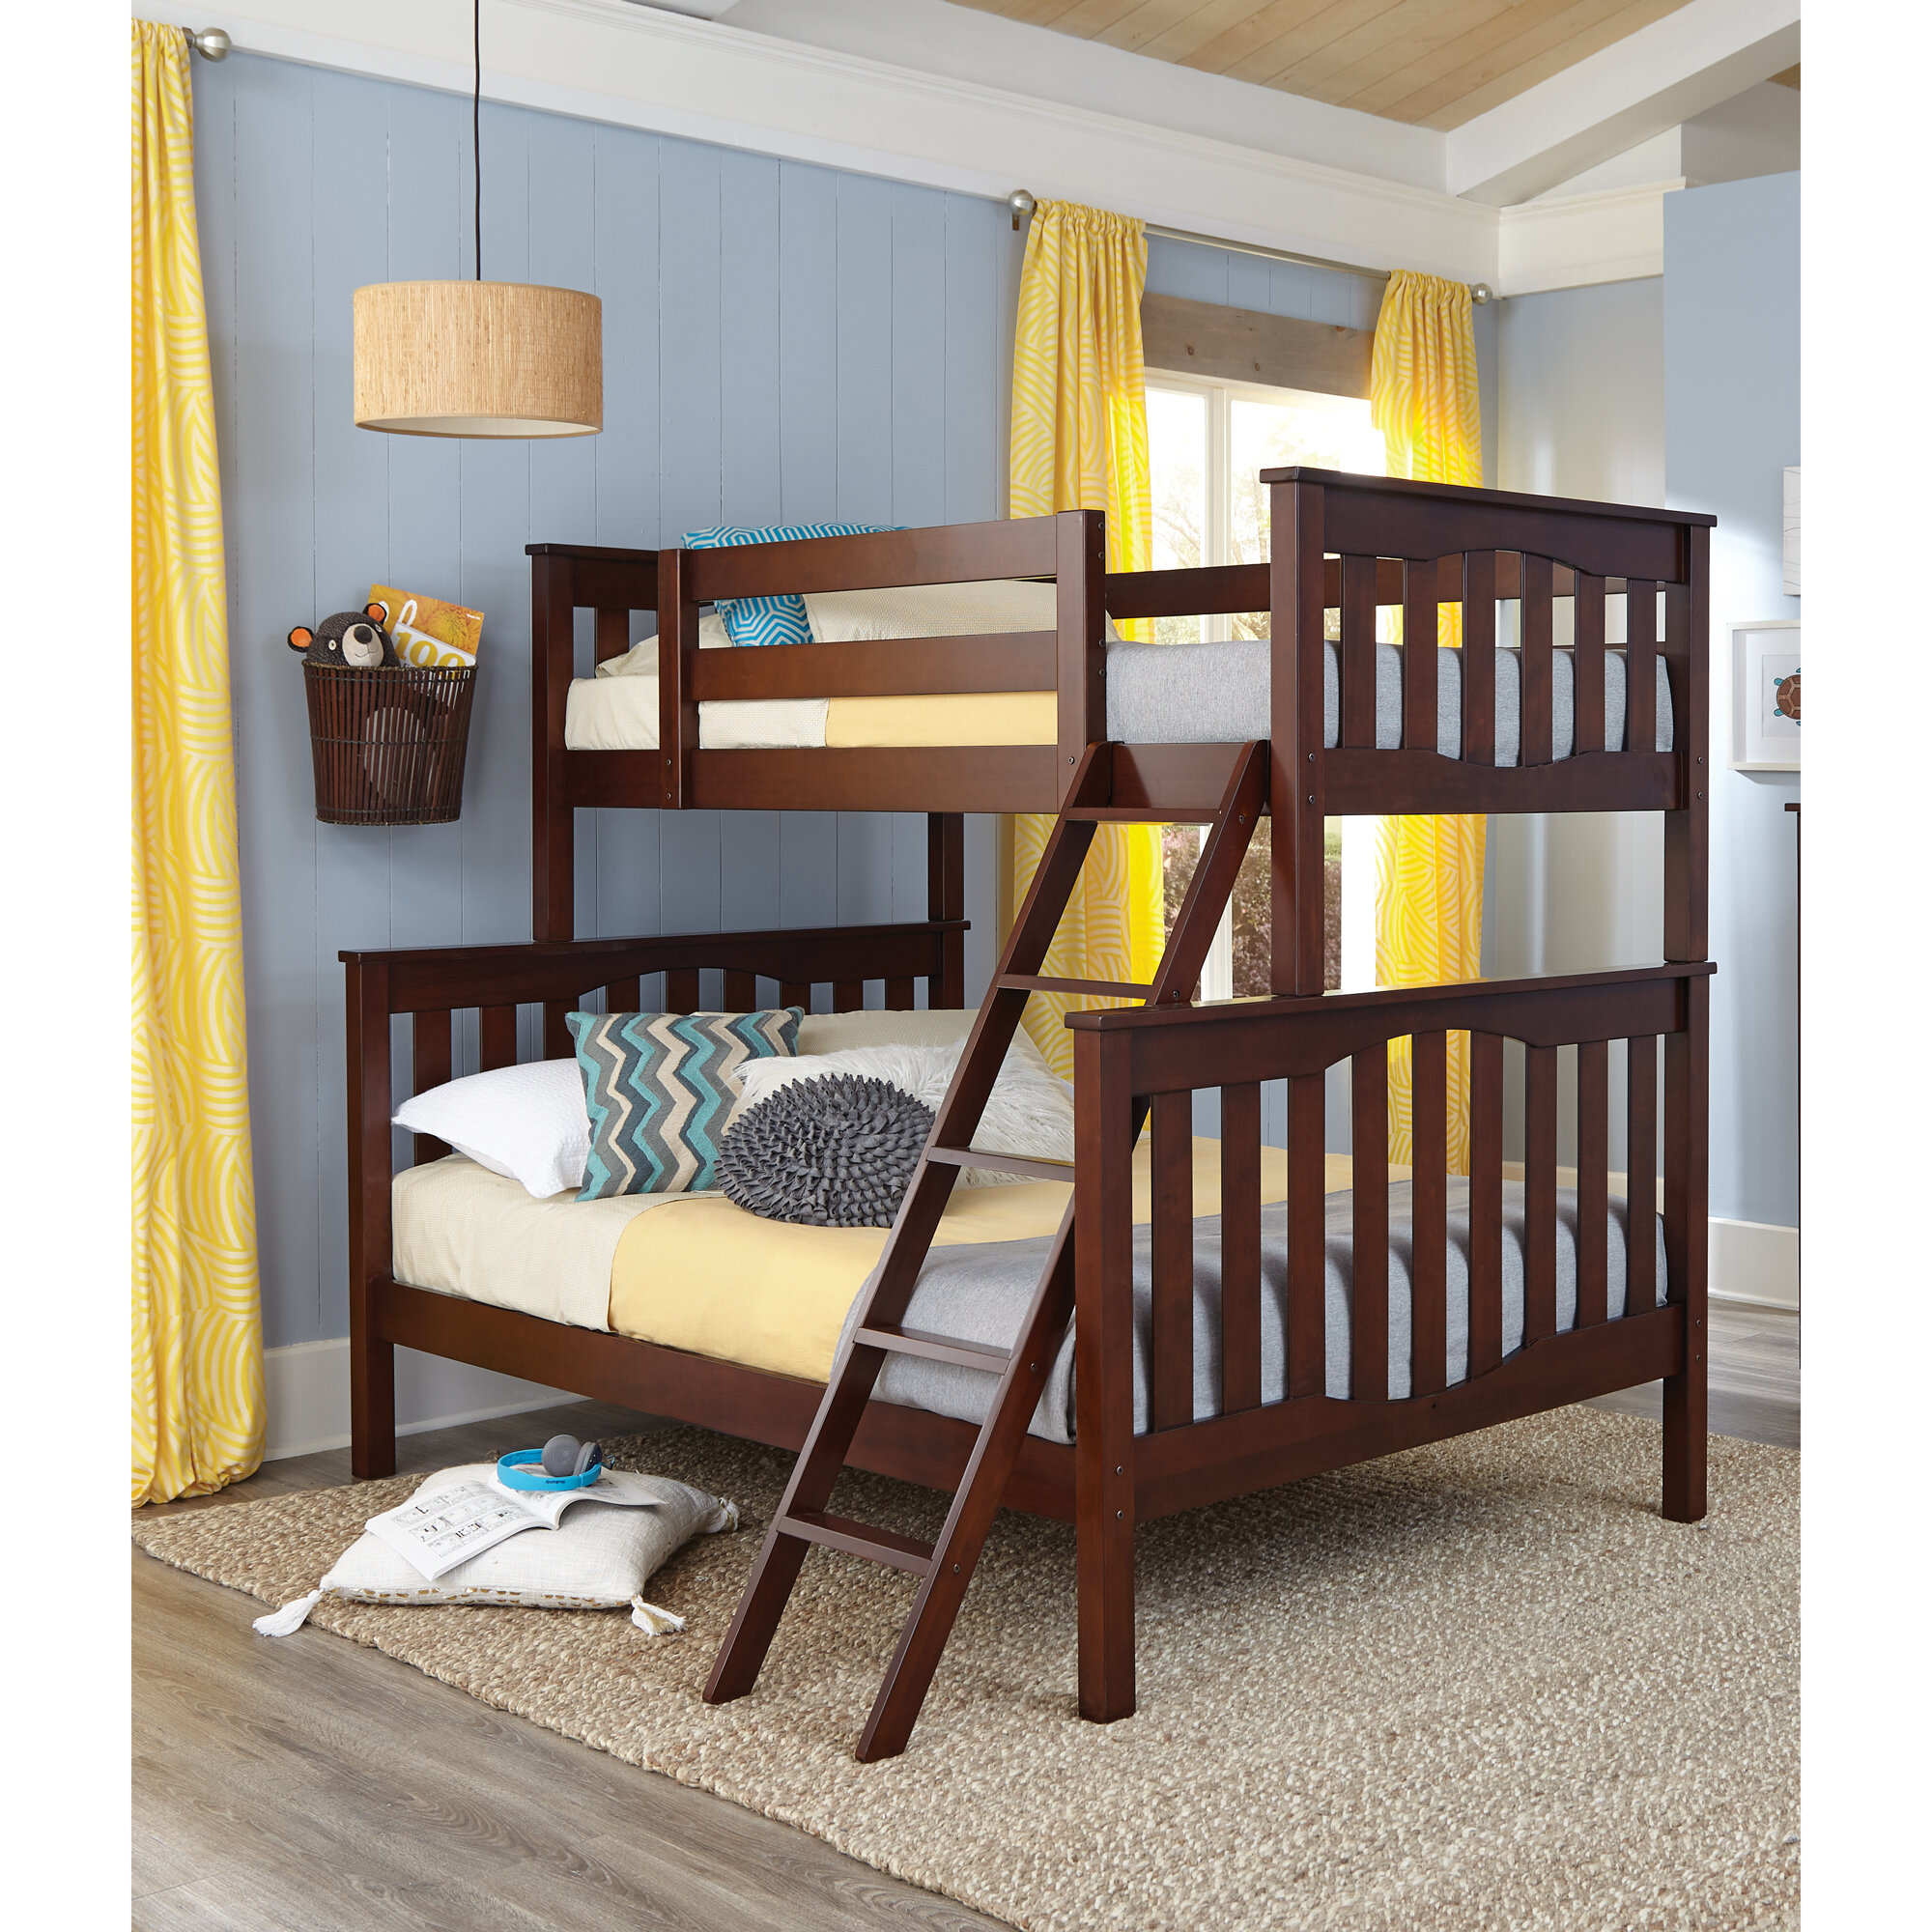 Epoch Design Seneca Twin Over Full Bunk Bed Wayfair